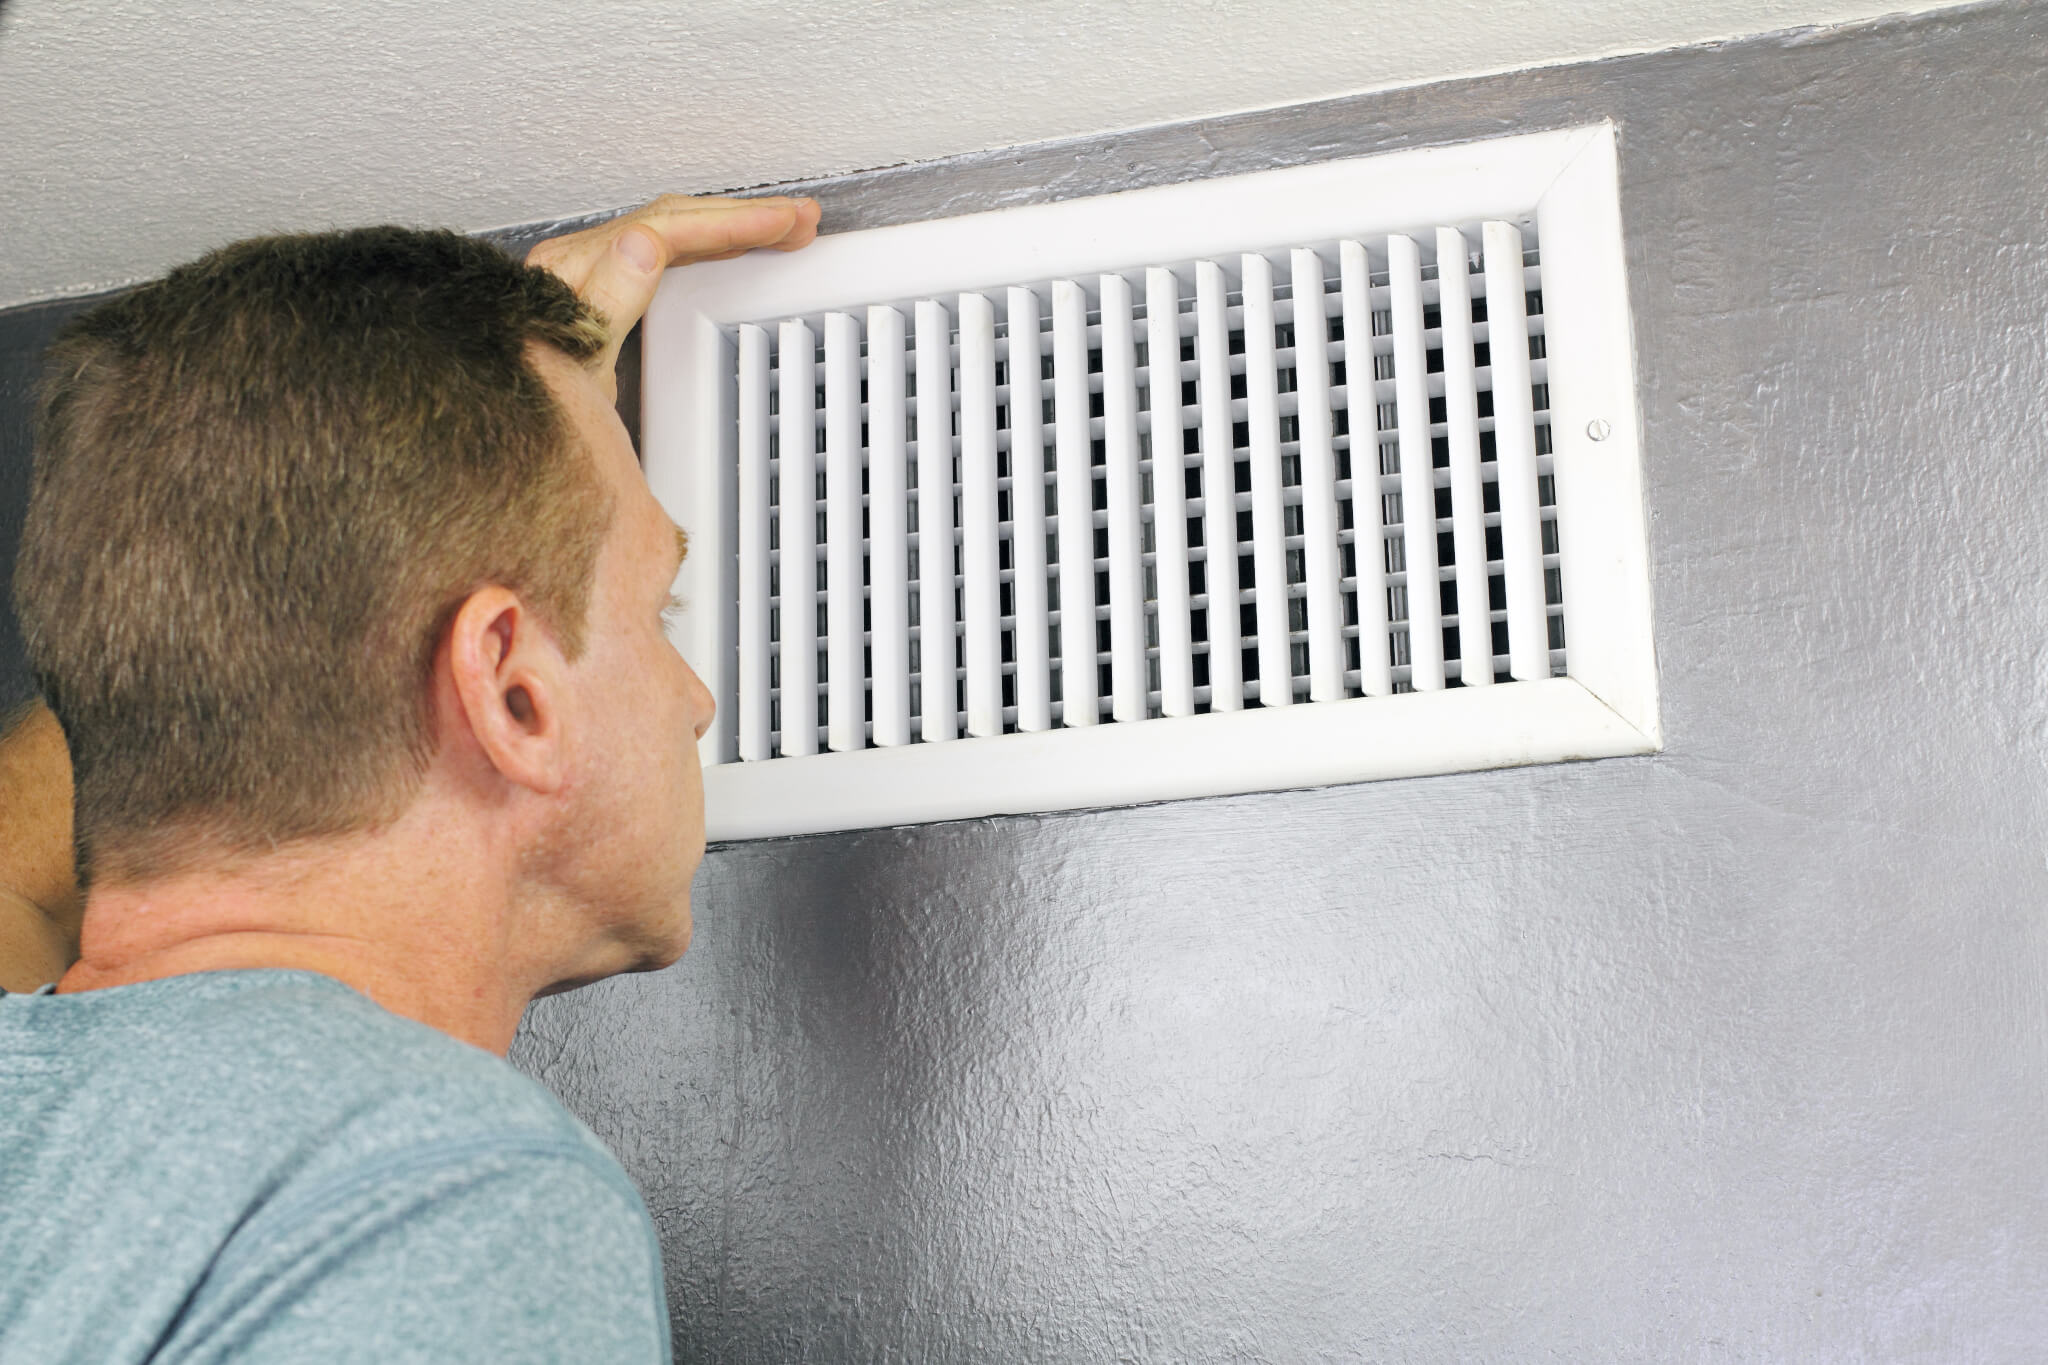 One Remedy for Poor Indoor Air Quality – Proper Ventilation